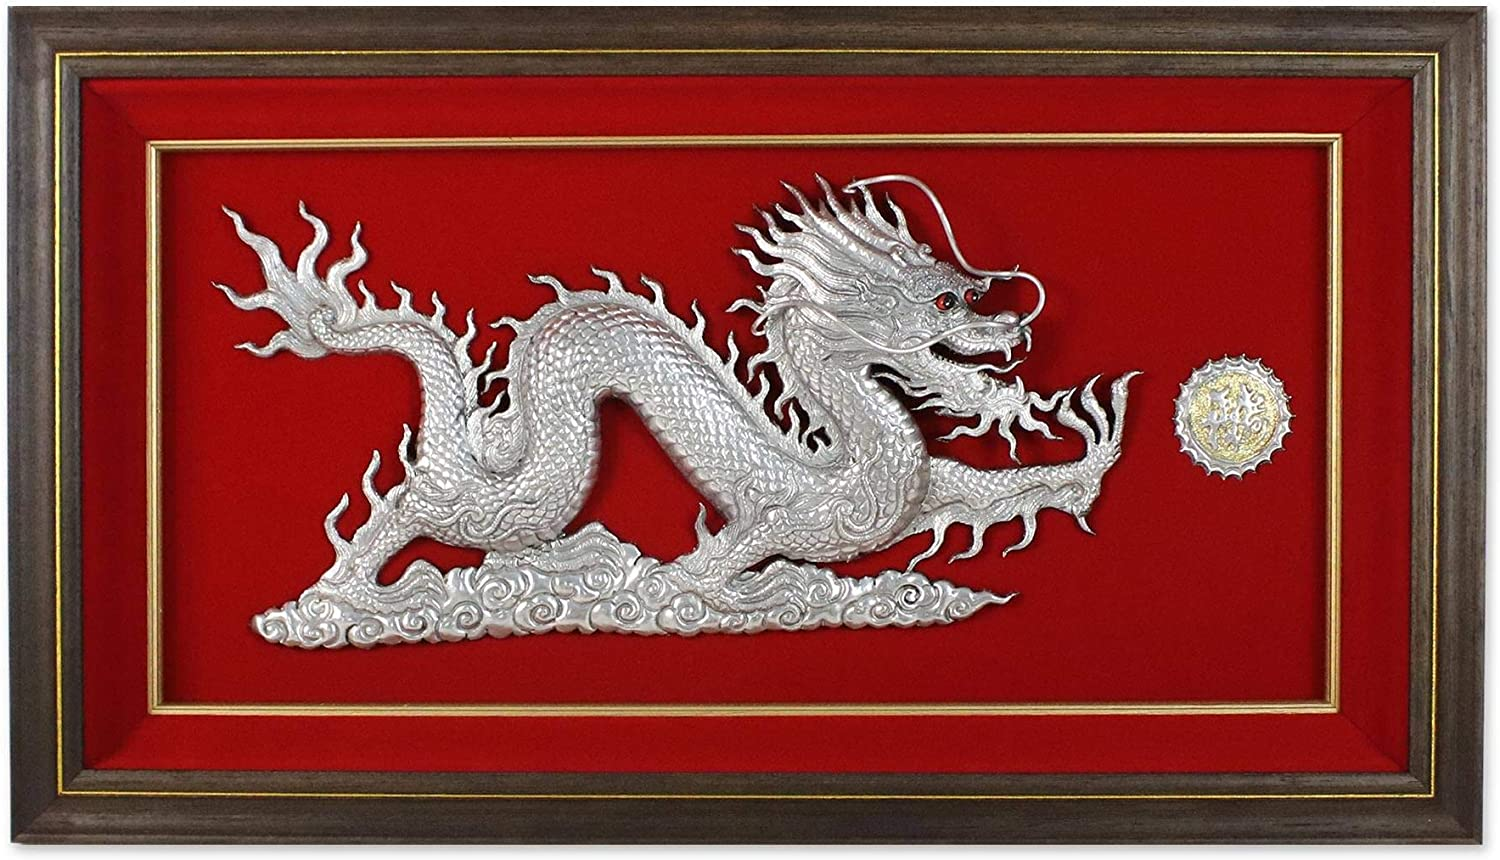 NOVICA Large Aluminum Relief Las Vegas Mall Al sold out. Panel Sculpture Metall Dragon Wall